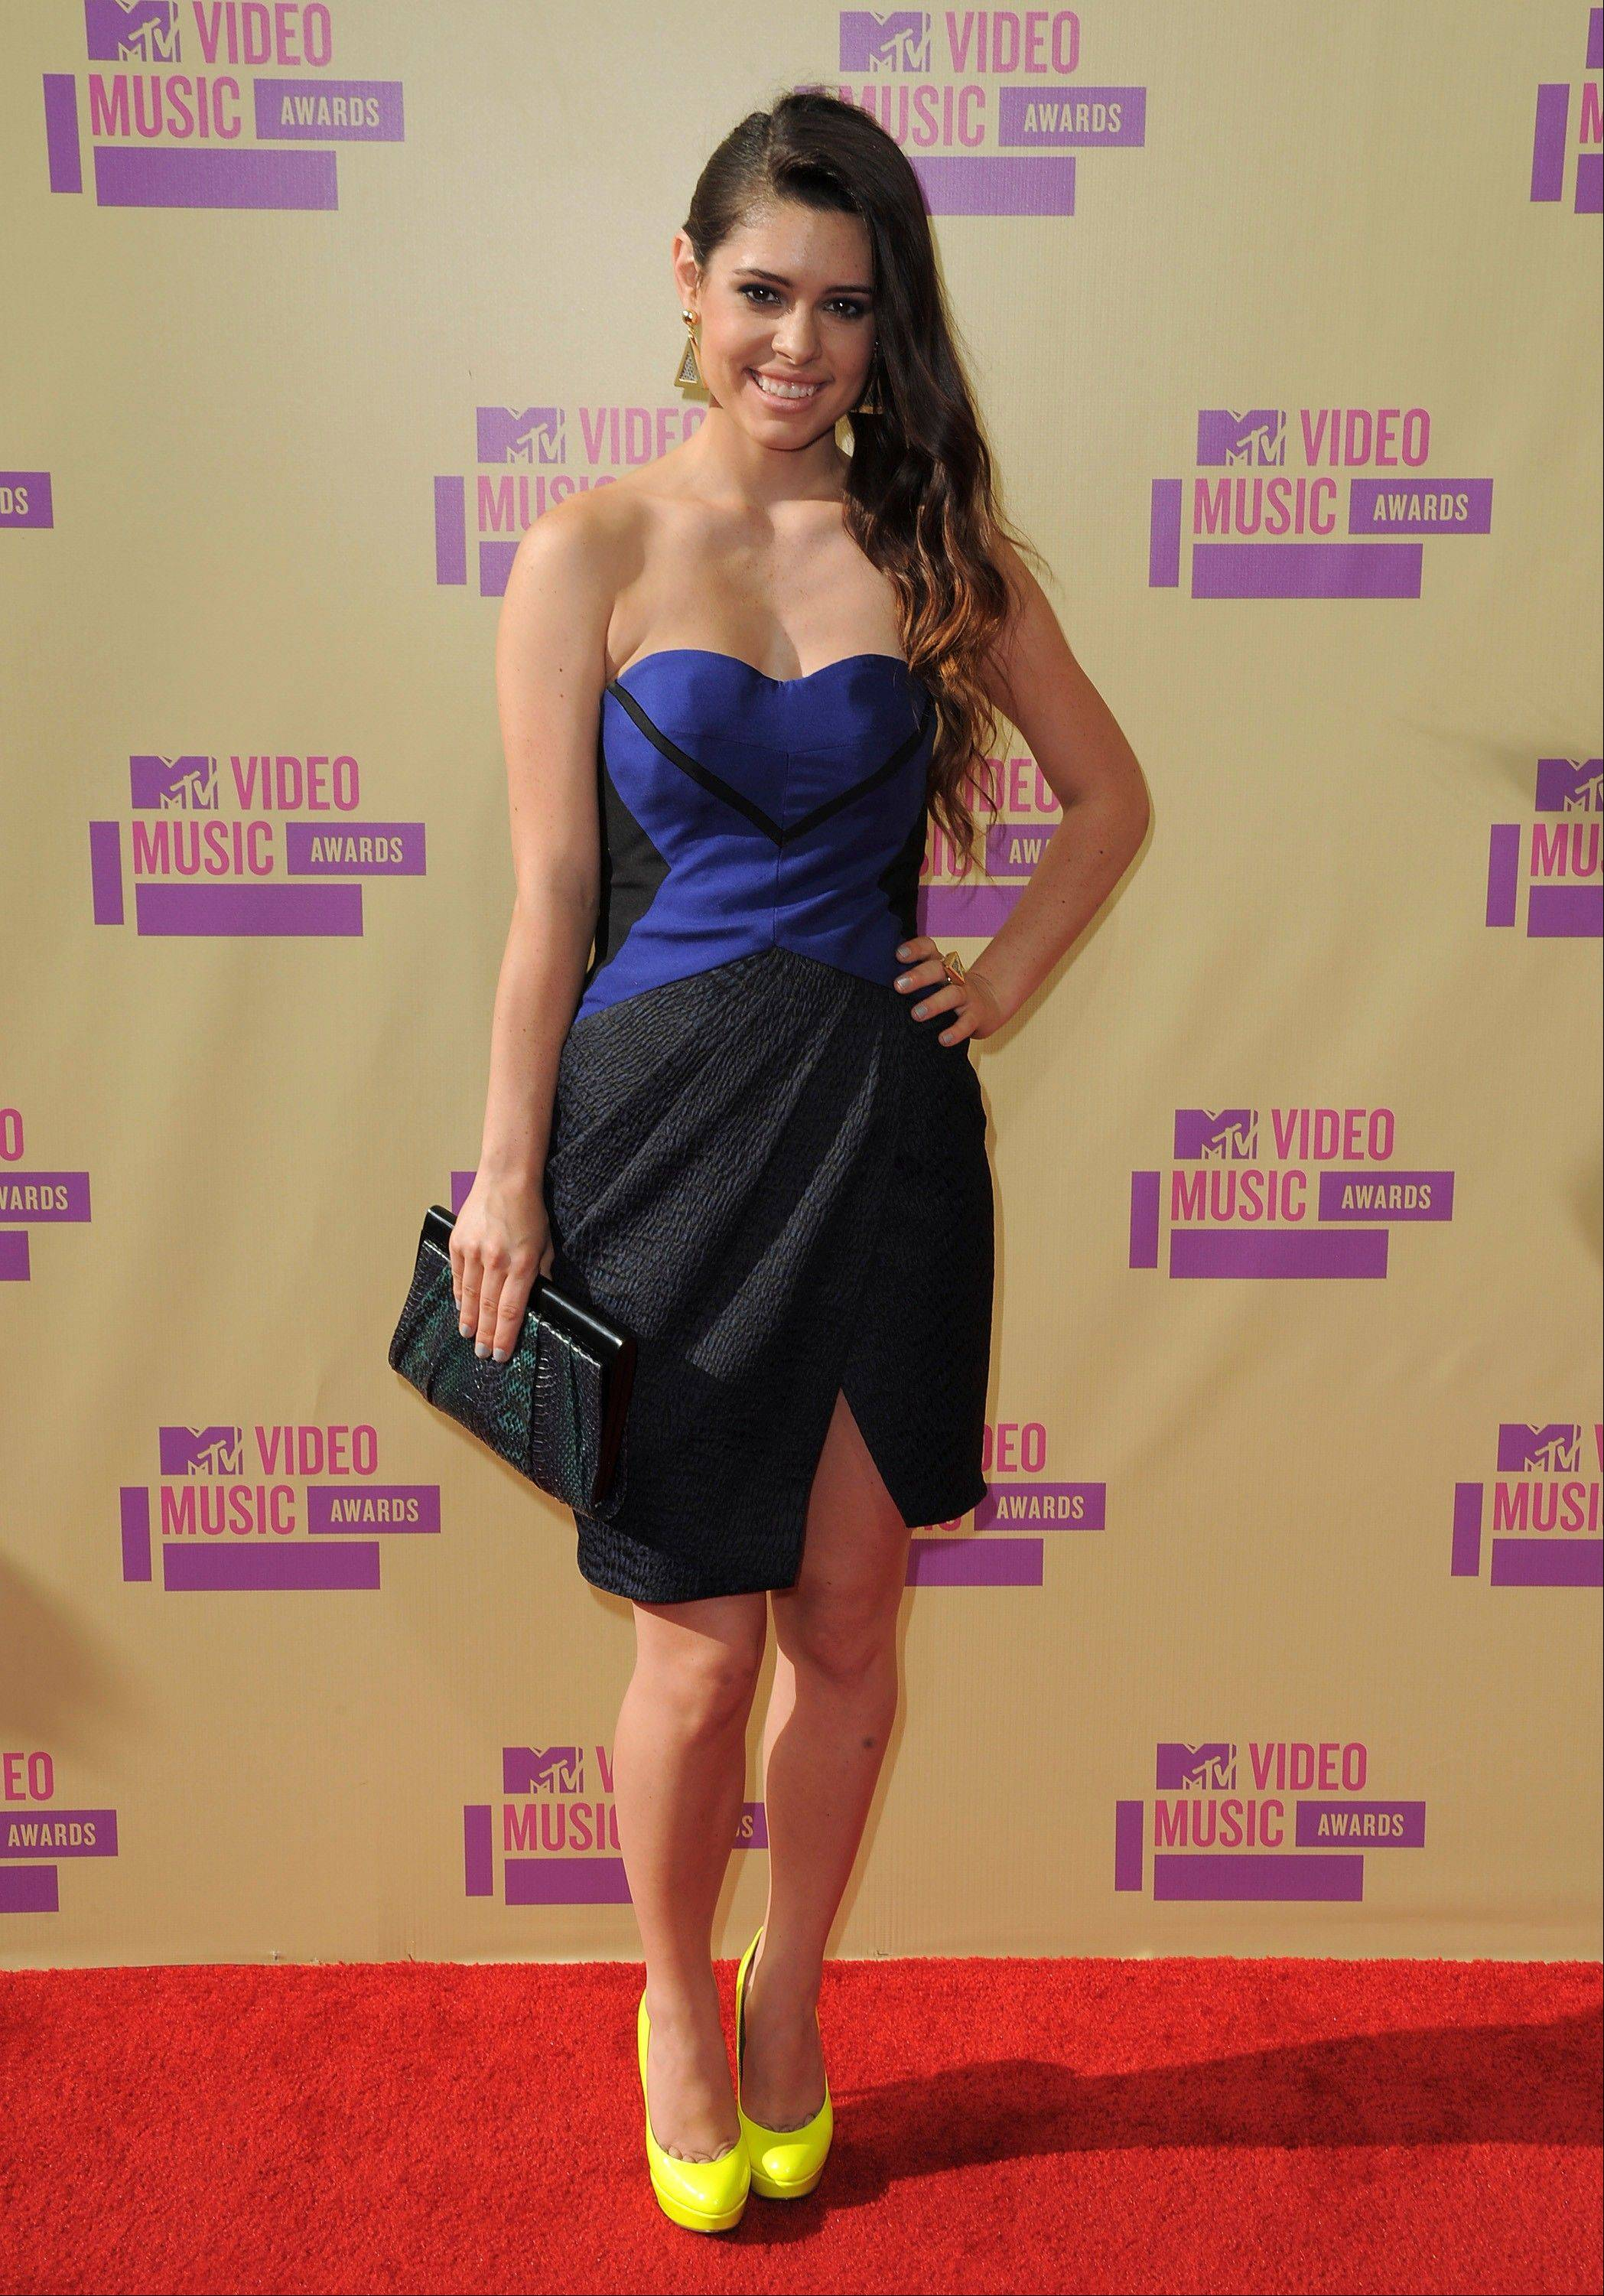 Alex Frnka attends the MTV Video Music Awards on Thursday, Sept. 6, 2012, in Los Angeles.